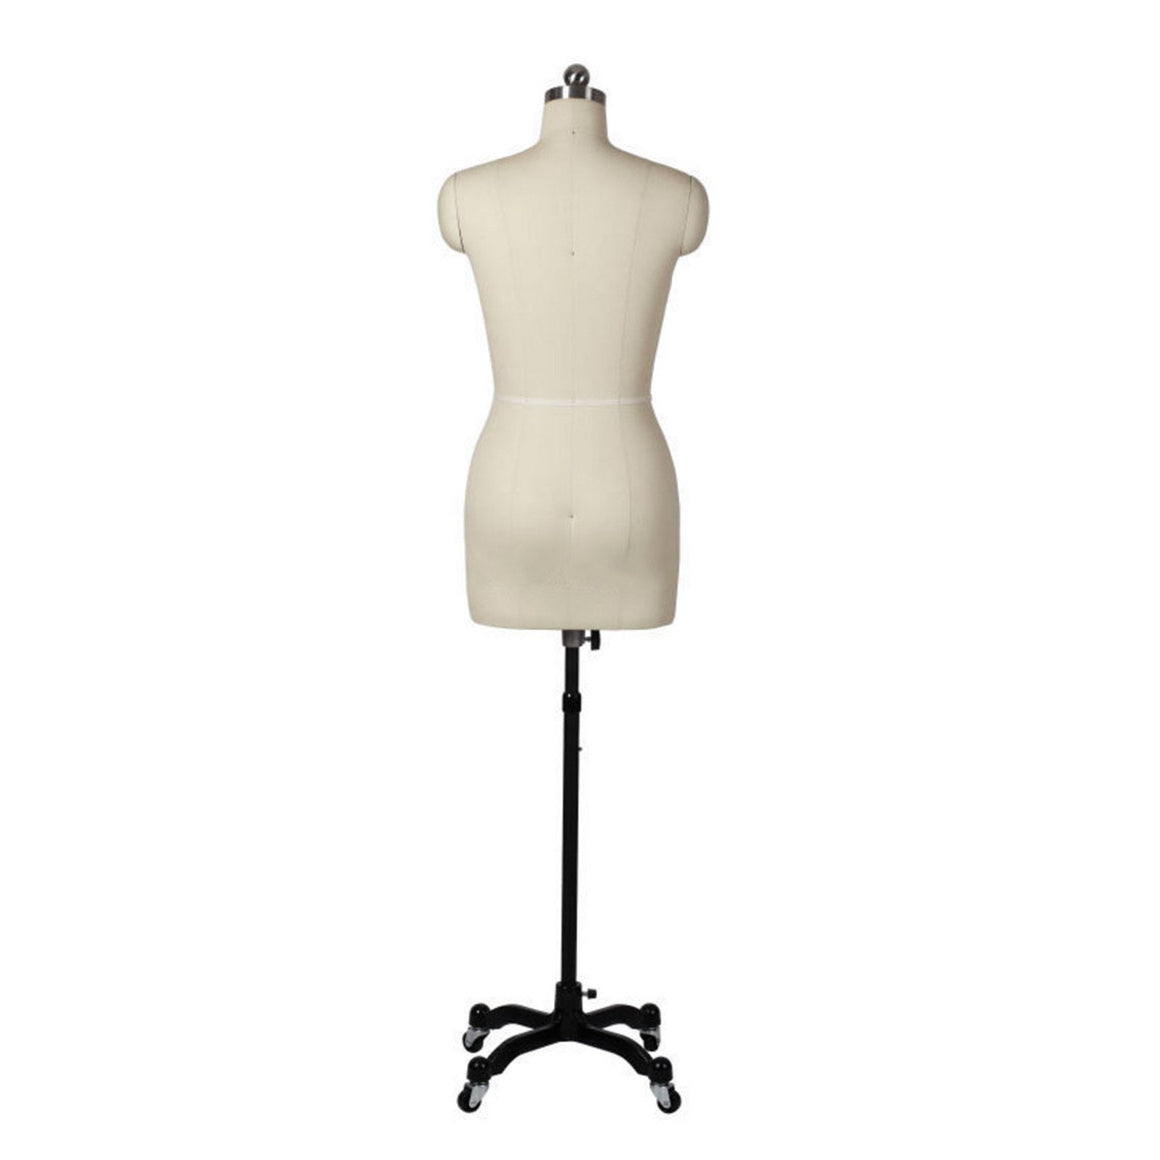 Female Professional Dress Form with Removable Shoulders